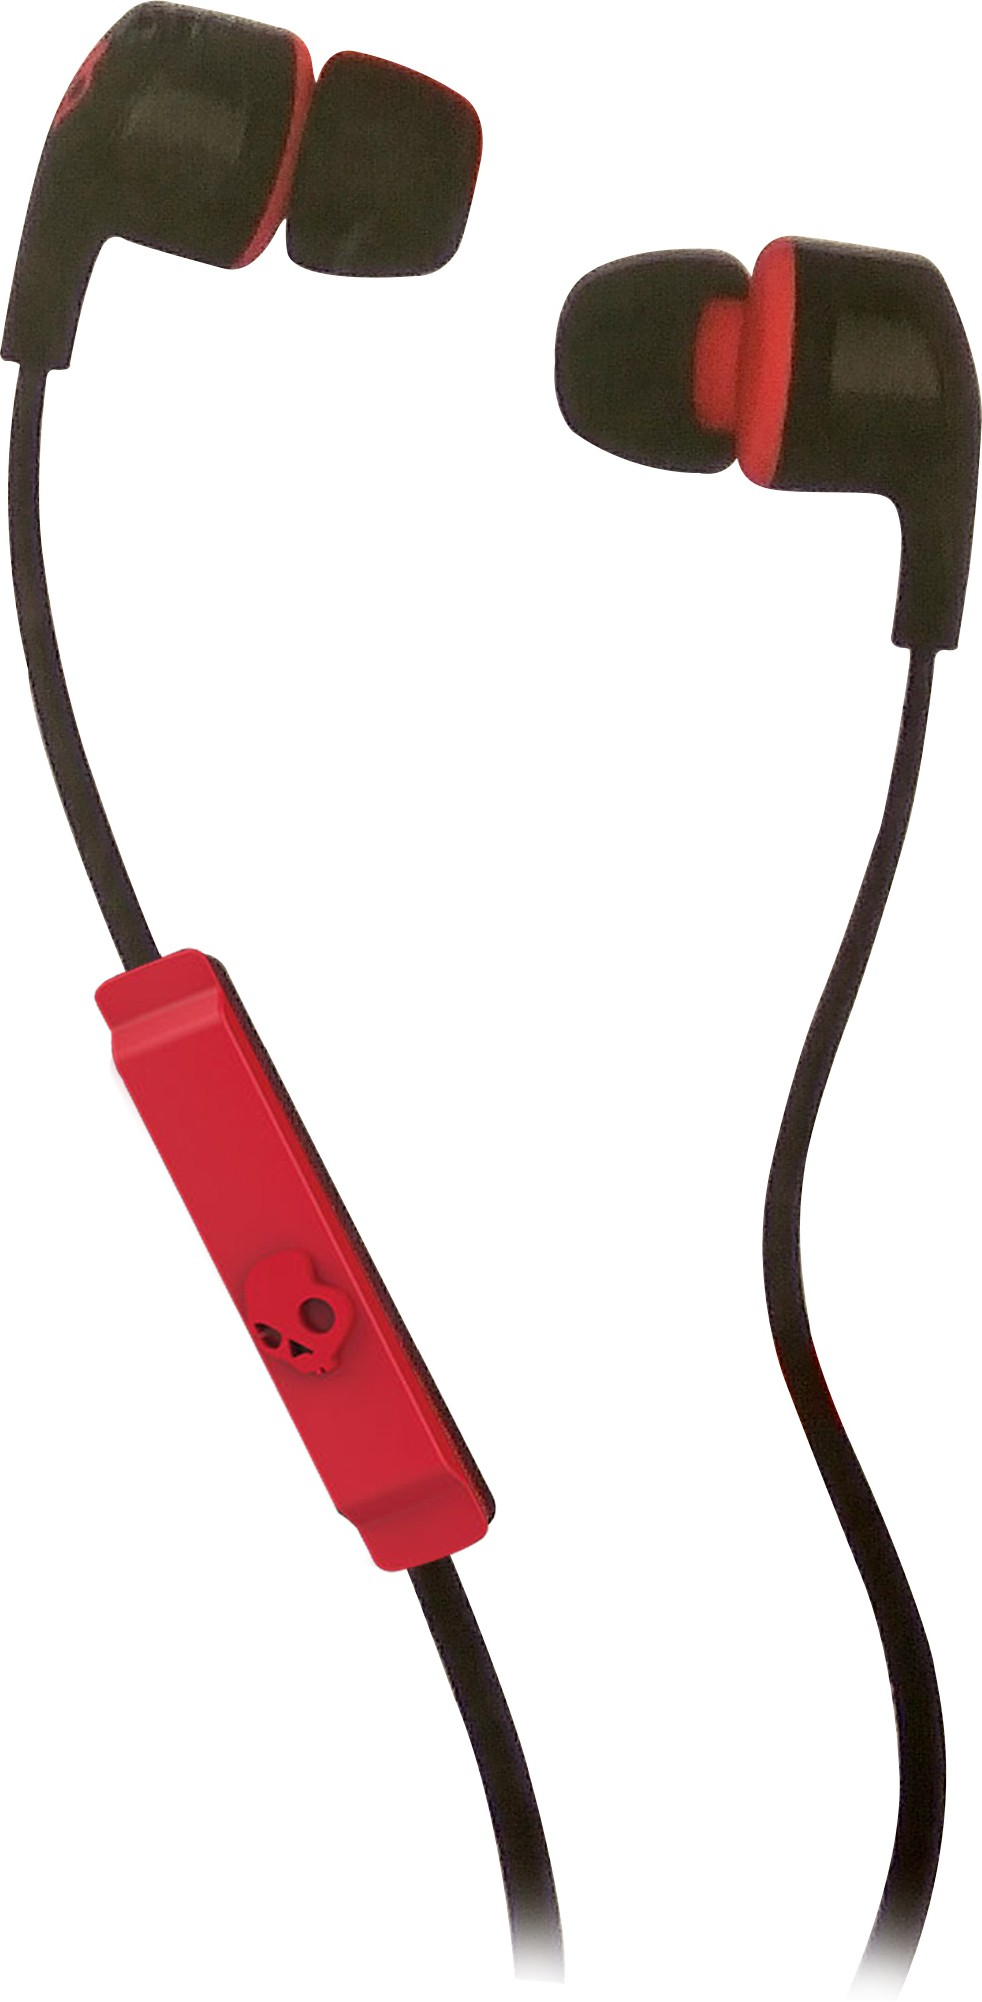 Skullcandy S2PGFY-010 Wired Headset With Mic(Black & Red)